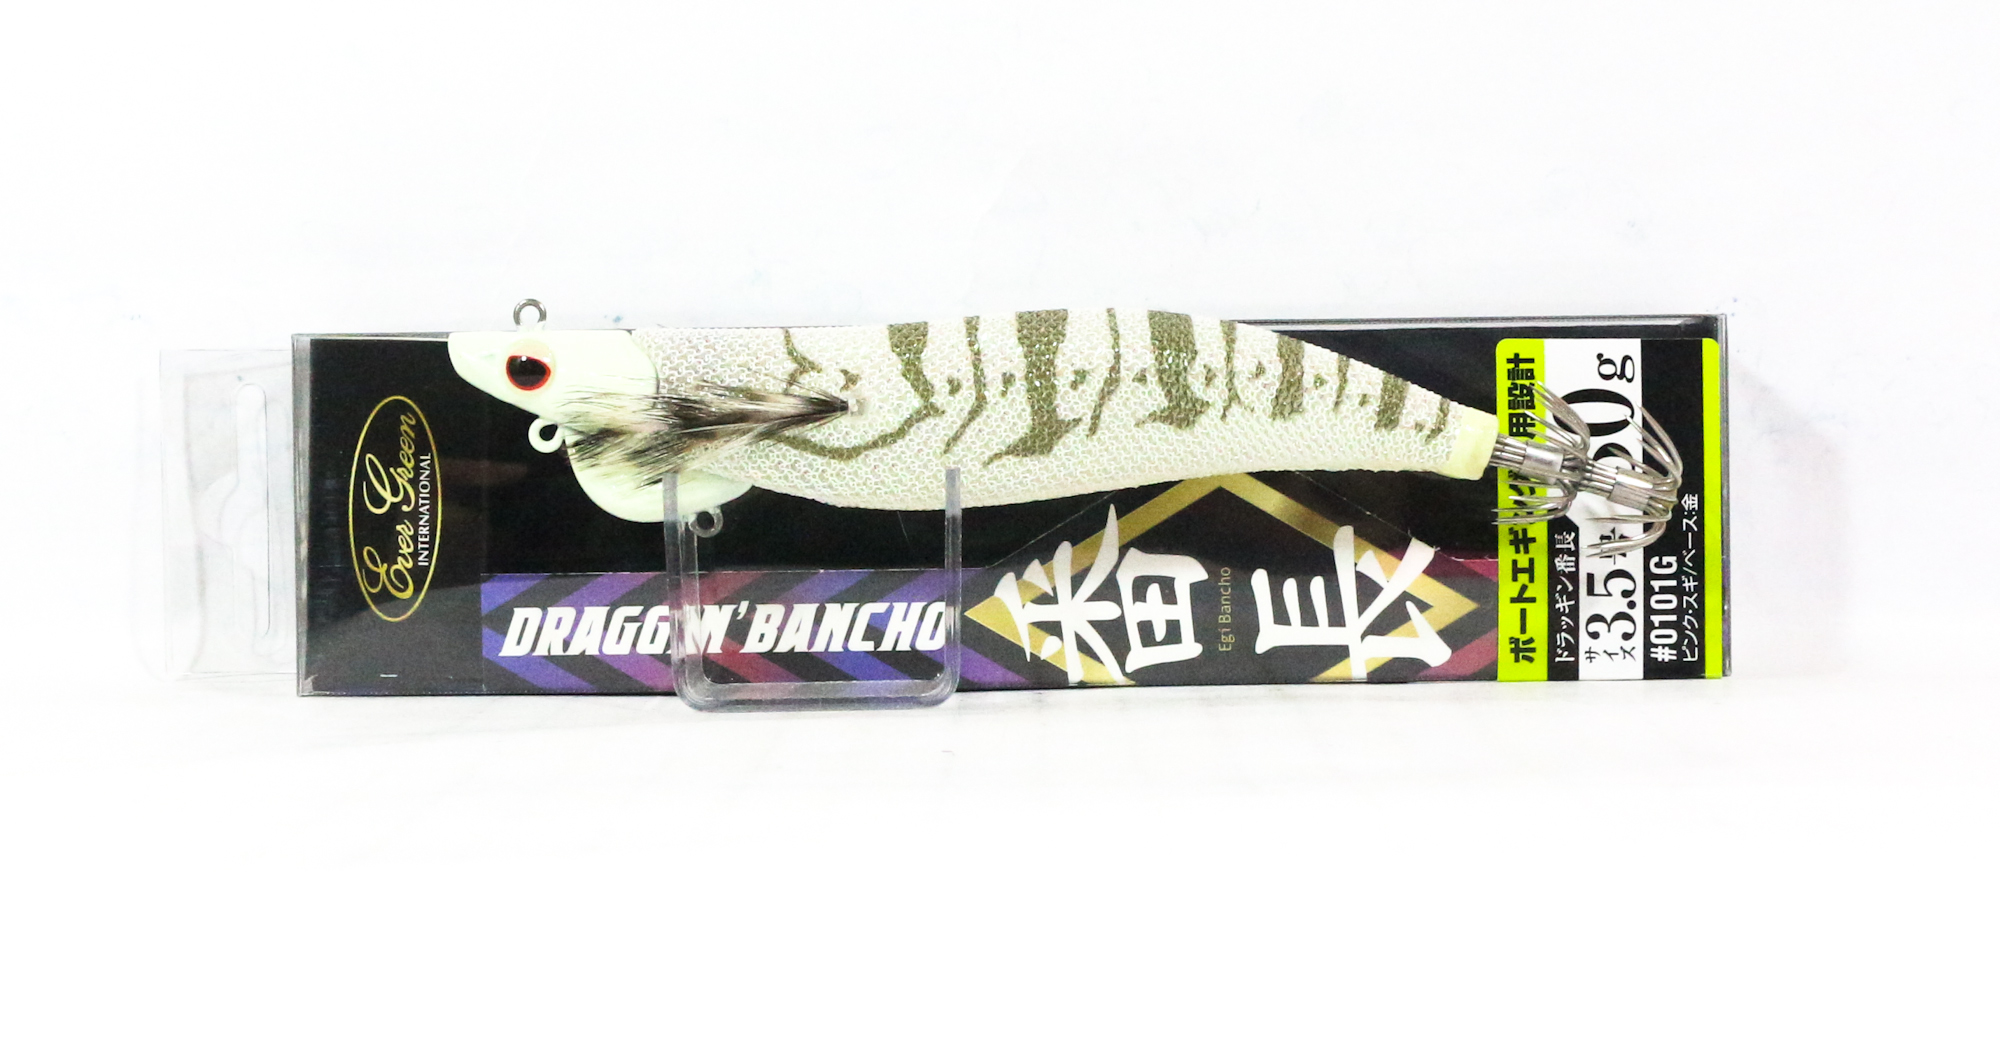 Evergreen Draggin Bancho Squid Jig Lure 3.5 30 grams 1501GL (0558)